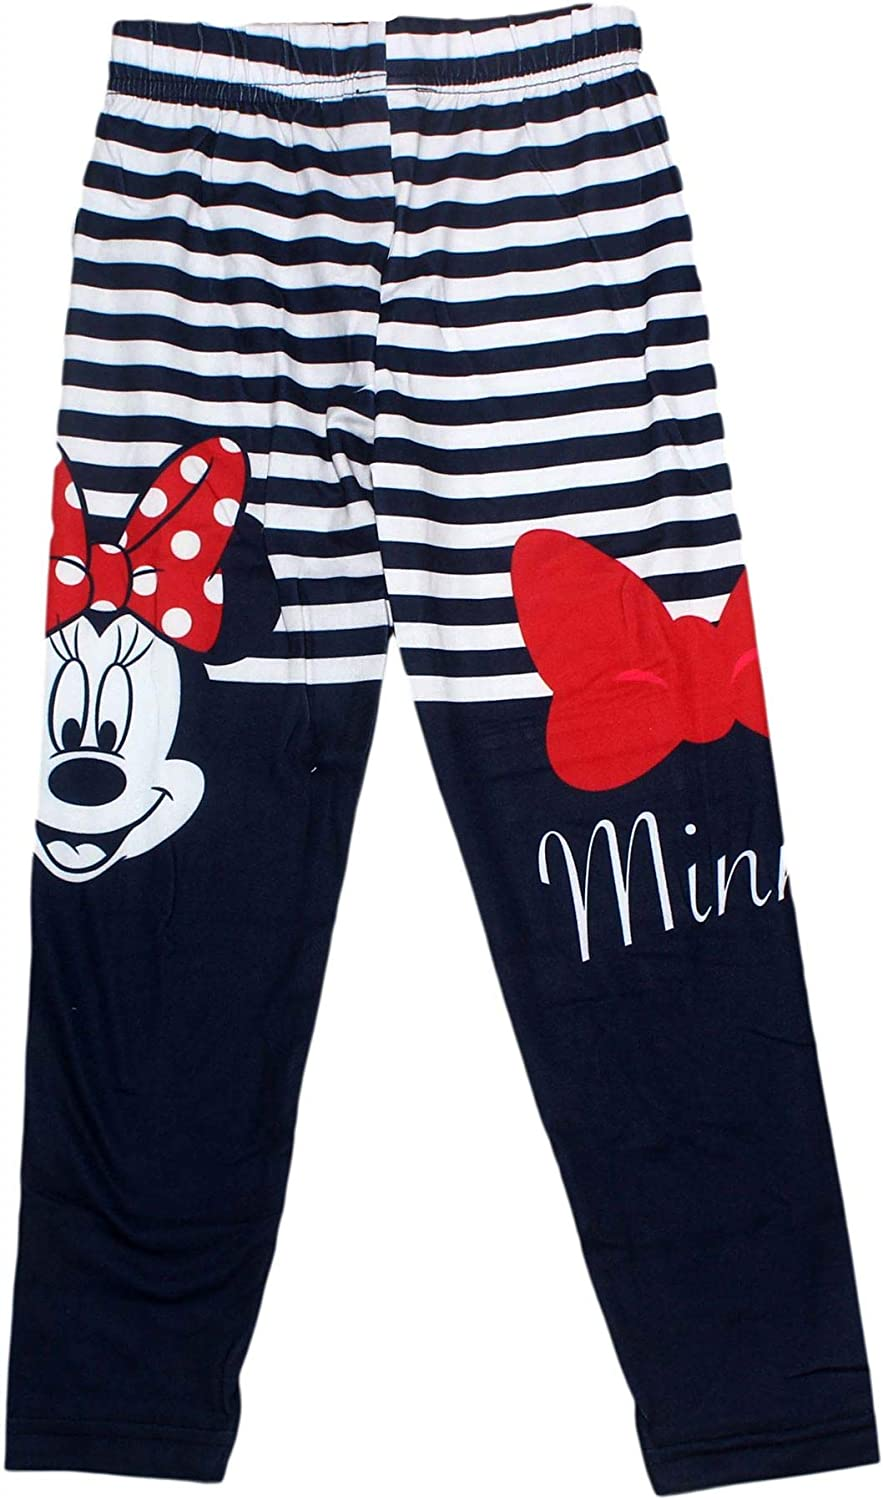 Disney Minnie Mouse Character Girls Leggings Tights Full Length 3-8 Years Polka Dots New 2018//19 Stripes Pattern